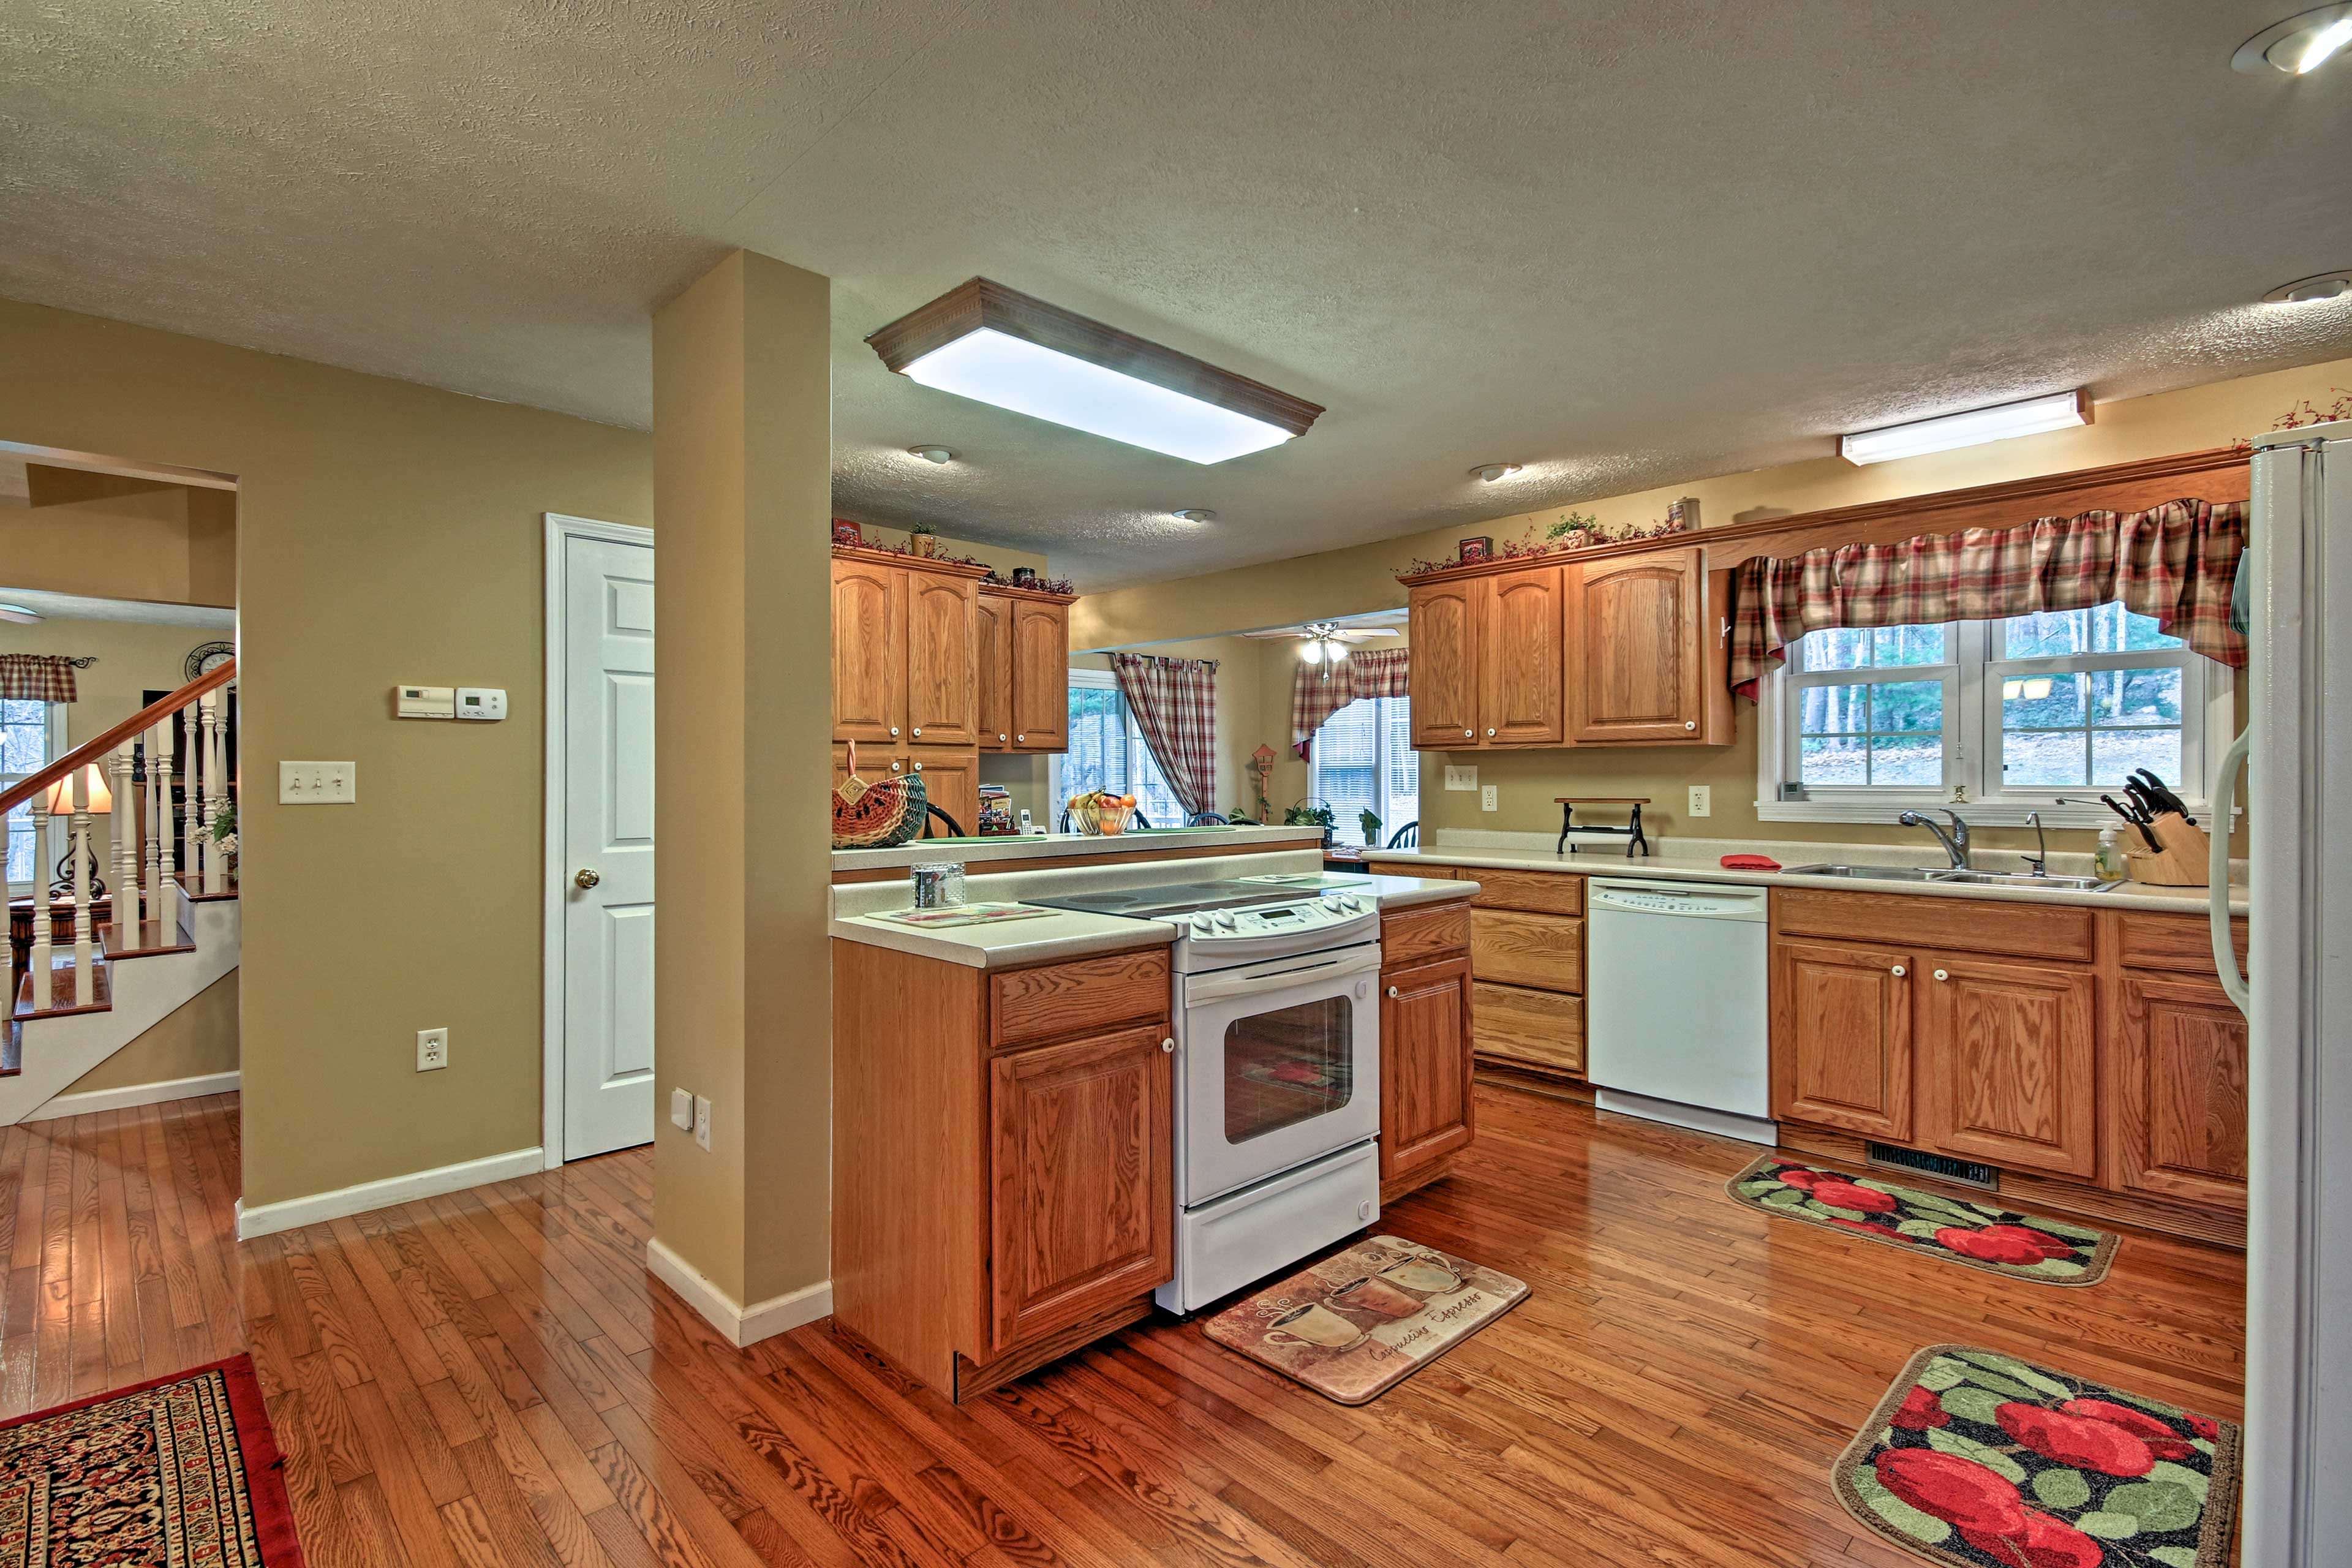 This kitchen comes fully equipped to handle all your favorite recipes.